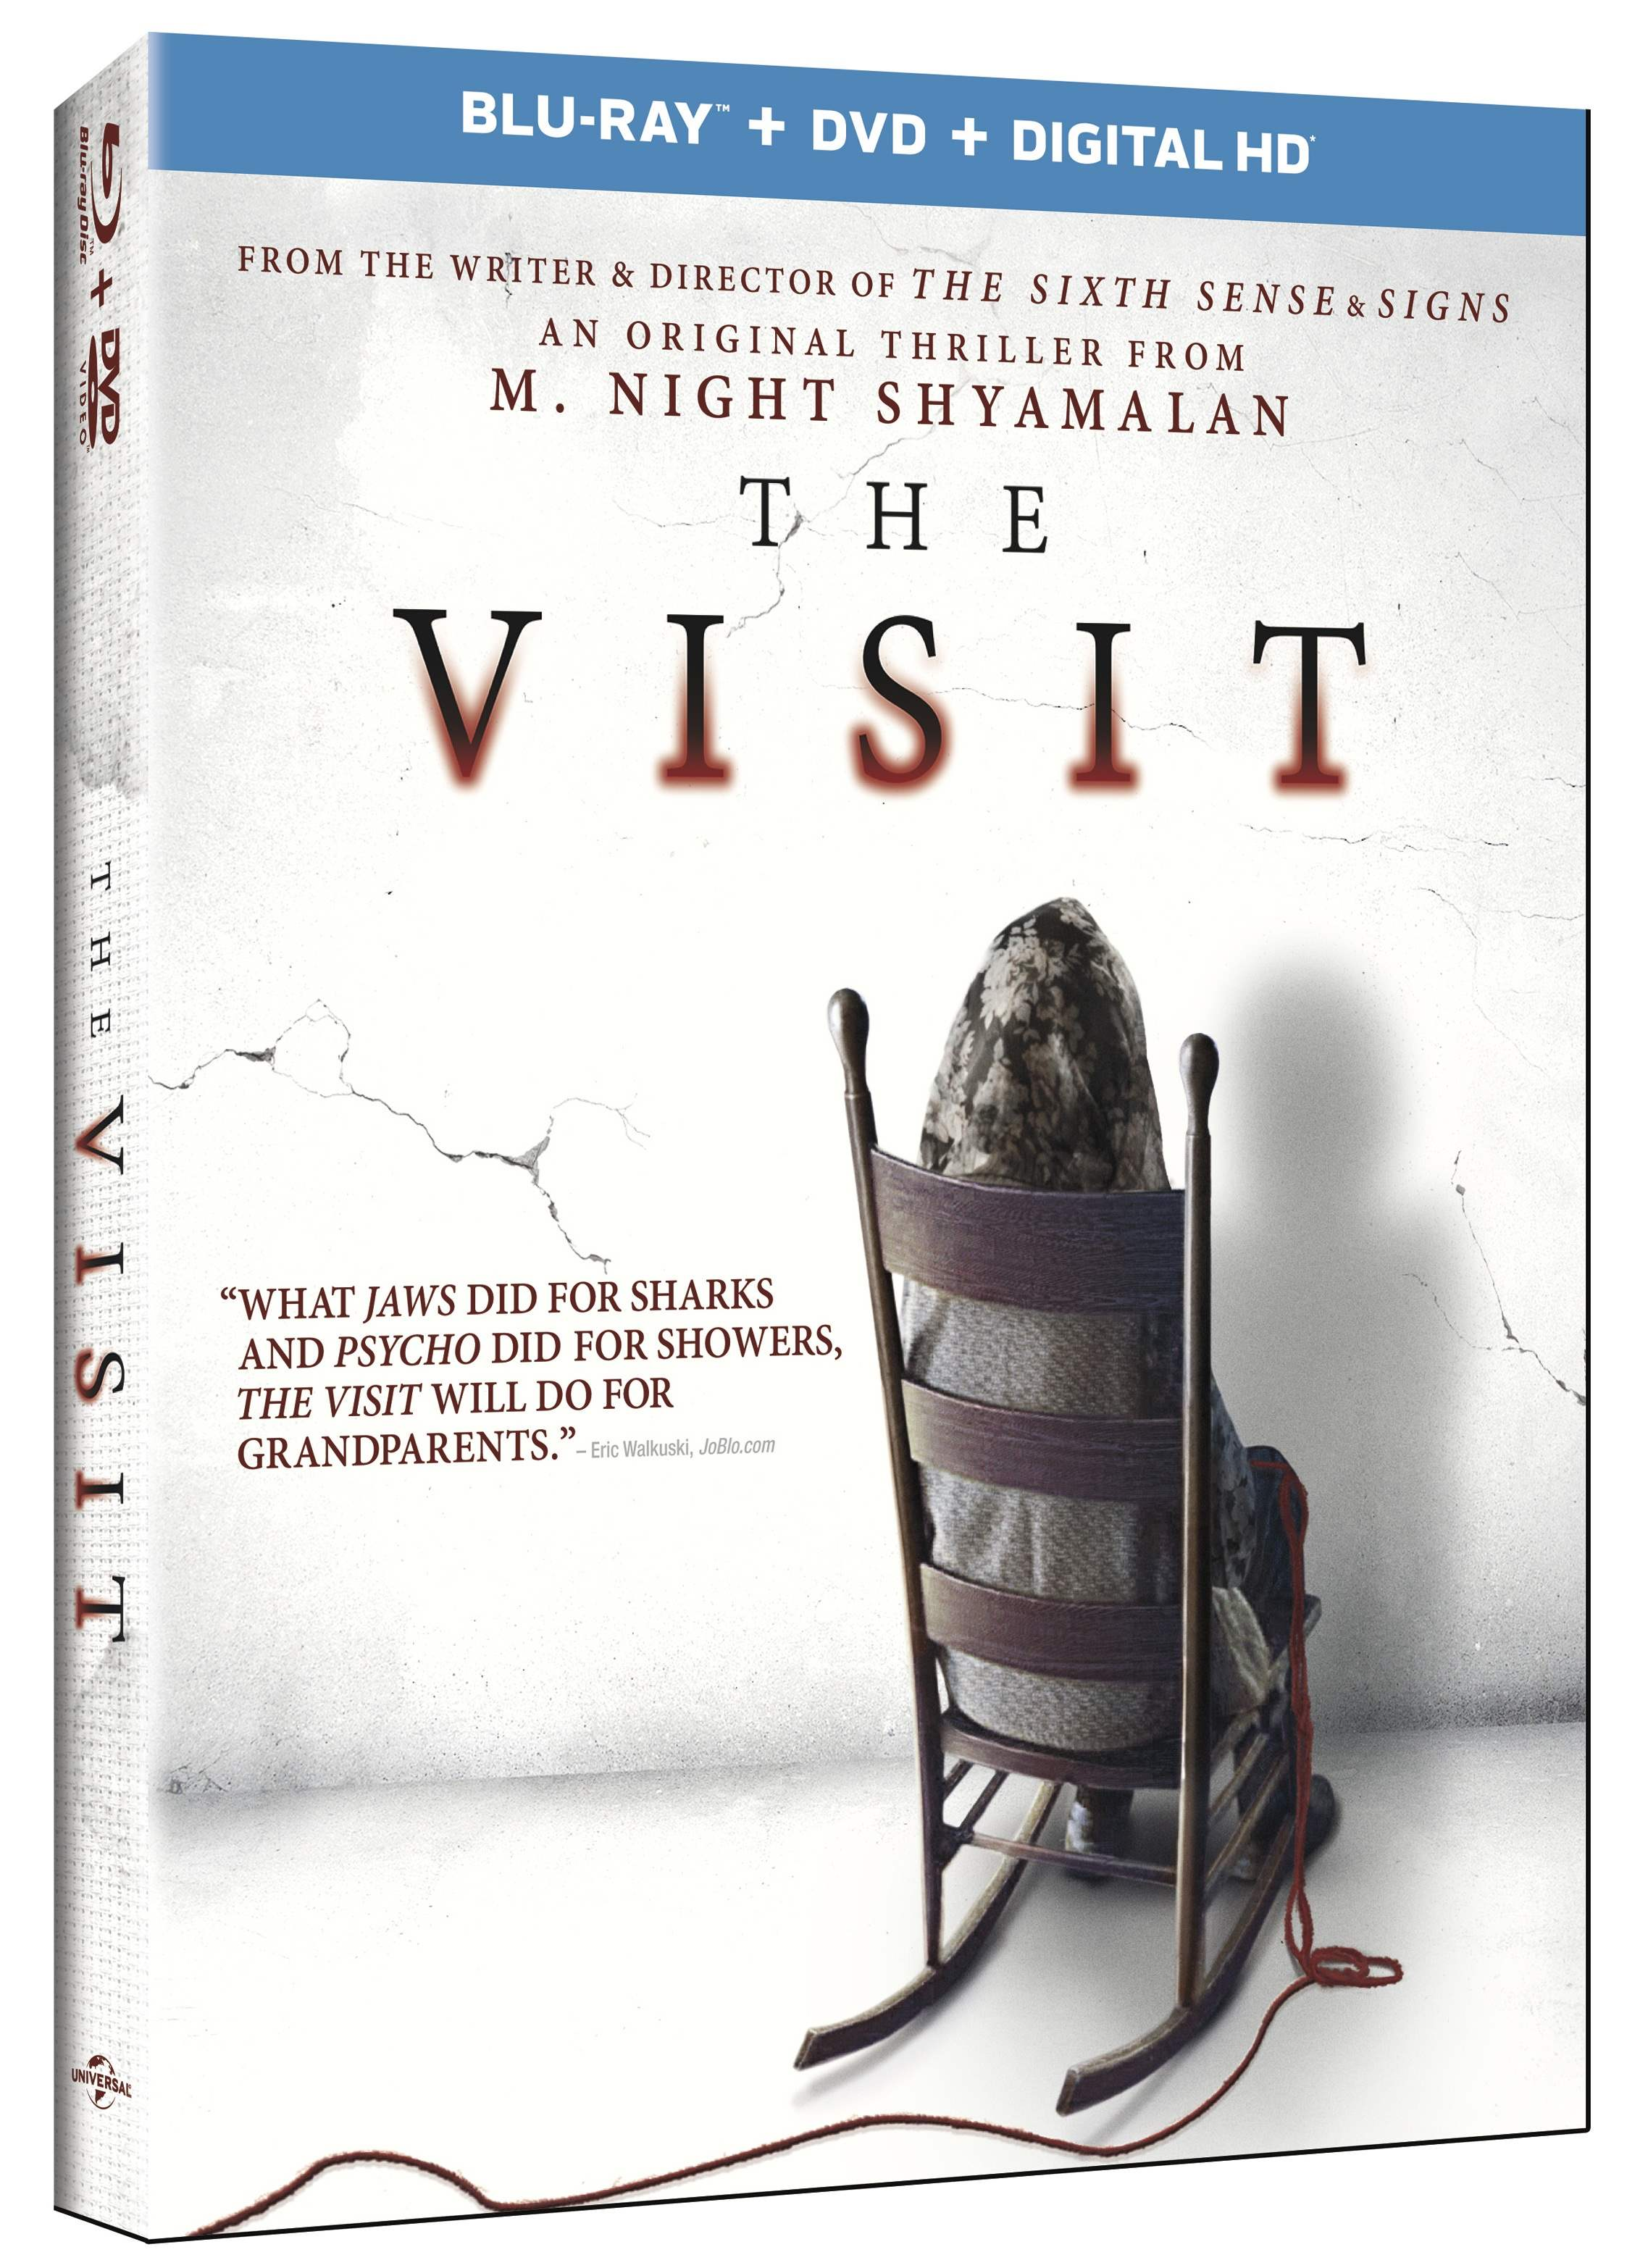 Blu Ray copy of M. Night Shymalan's The Visit for giveaway